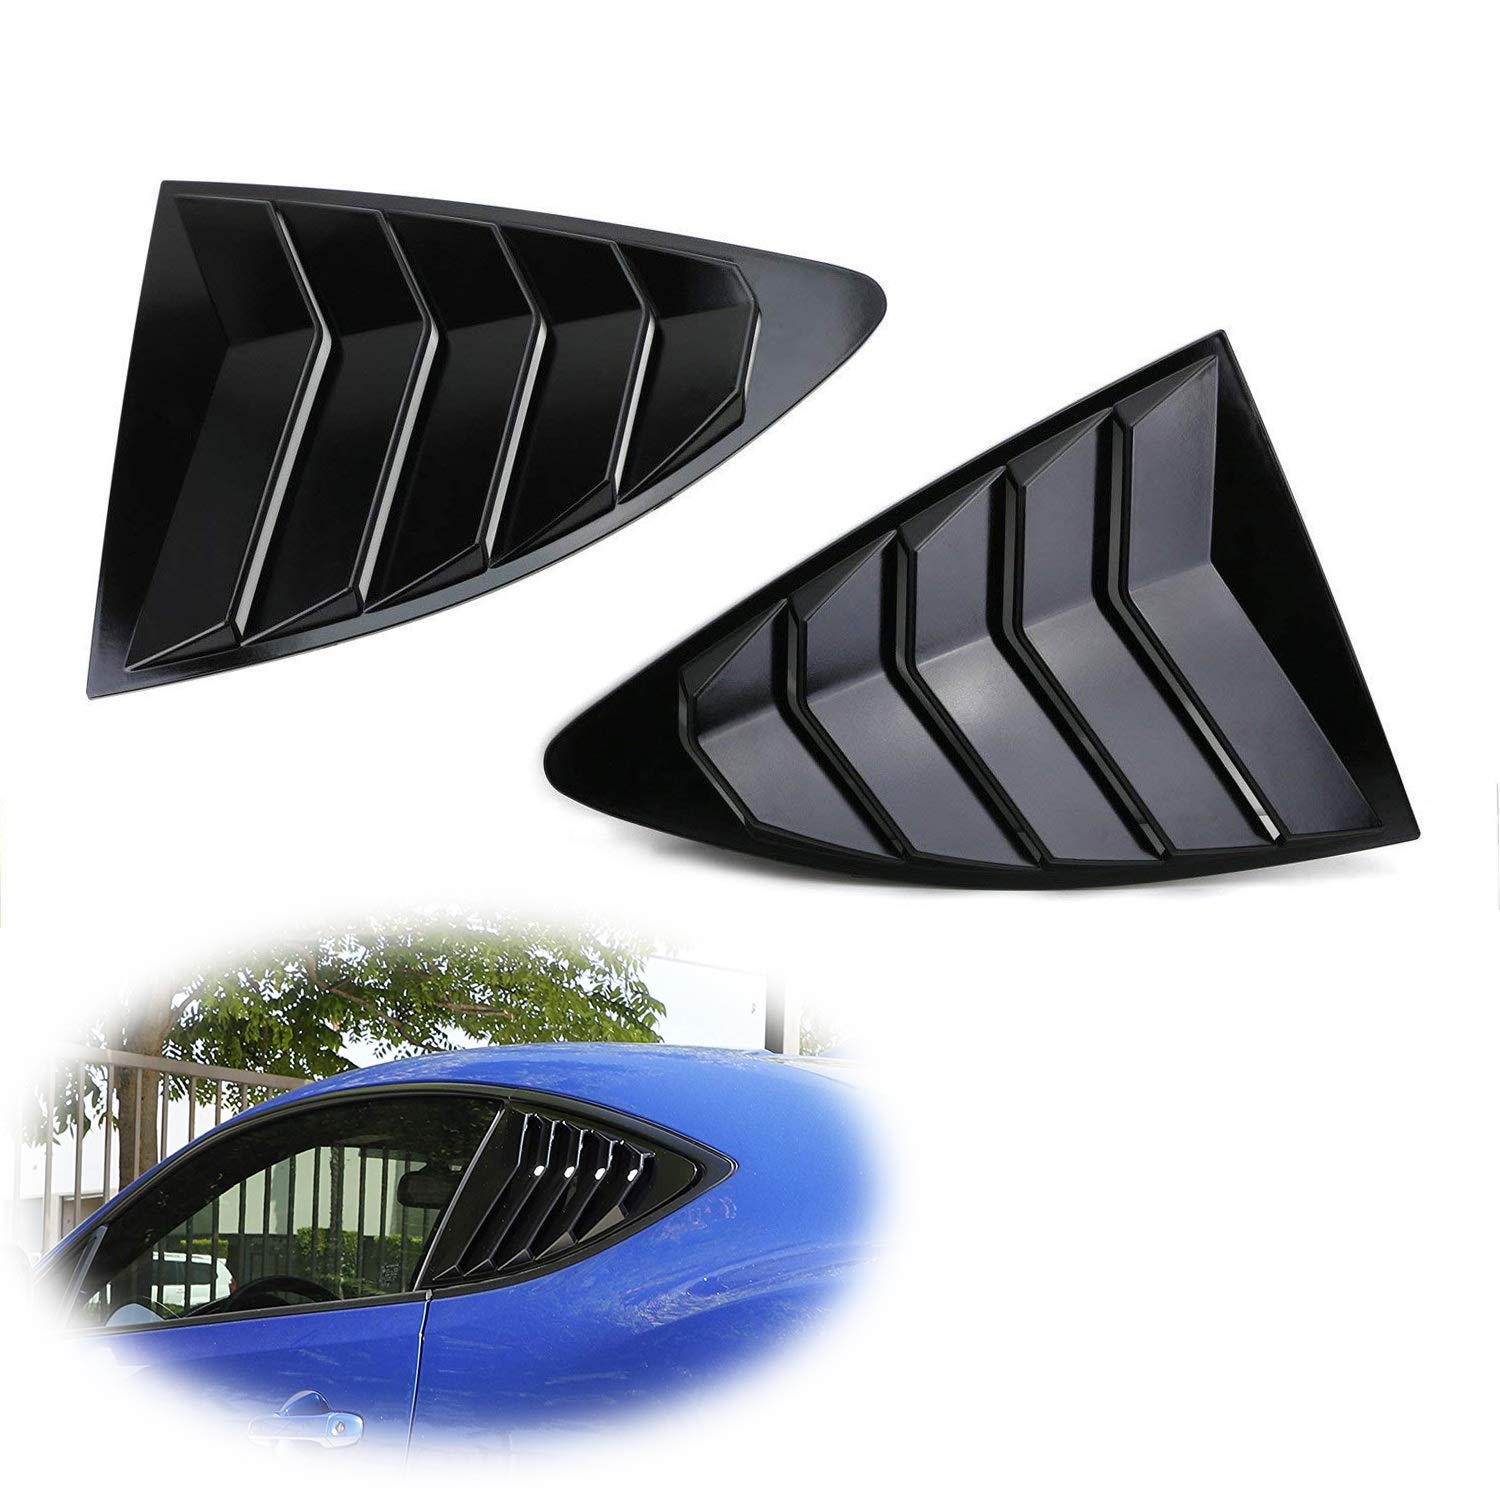 iJDMTOY Left/Right Glossy Finish Racing Style Rear Side Window Scoop Air Vent/Louver Shades For 2013-up Scion FR-S Subaru BRZ and Toyota 86 iJDMTOY Auto Accessories Air Vent Scoop Louver Assembly Assy Kit